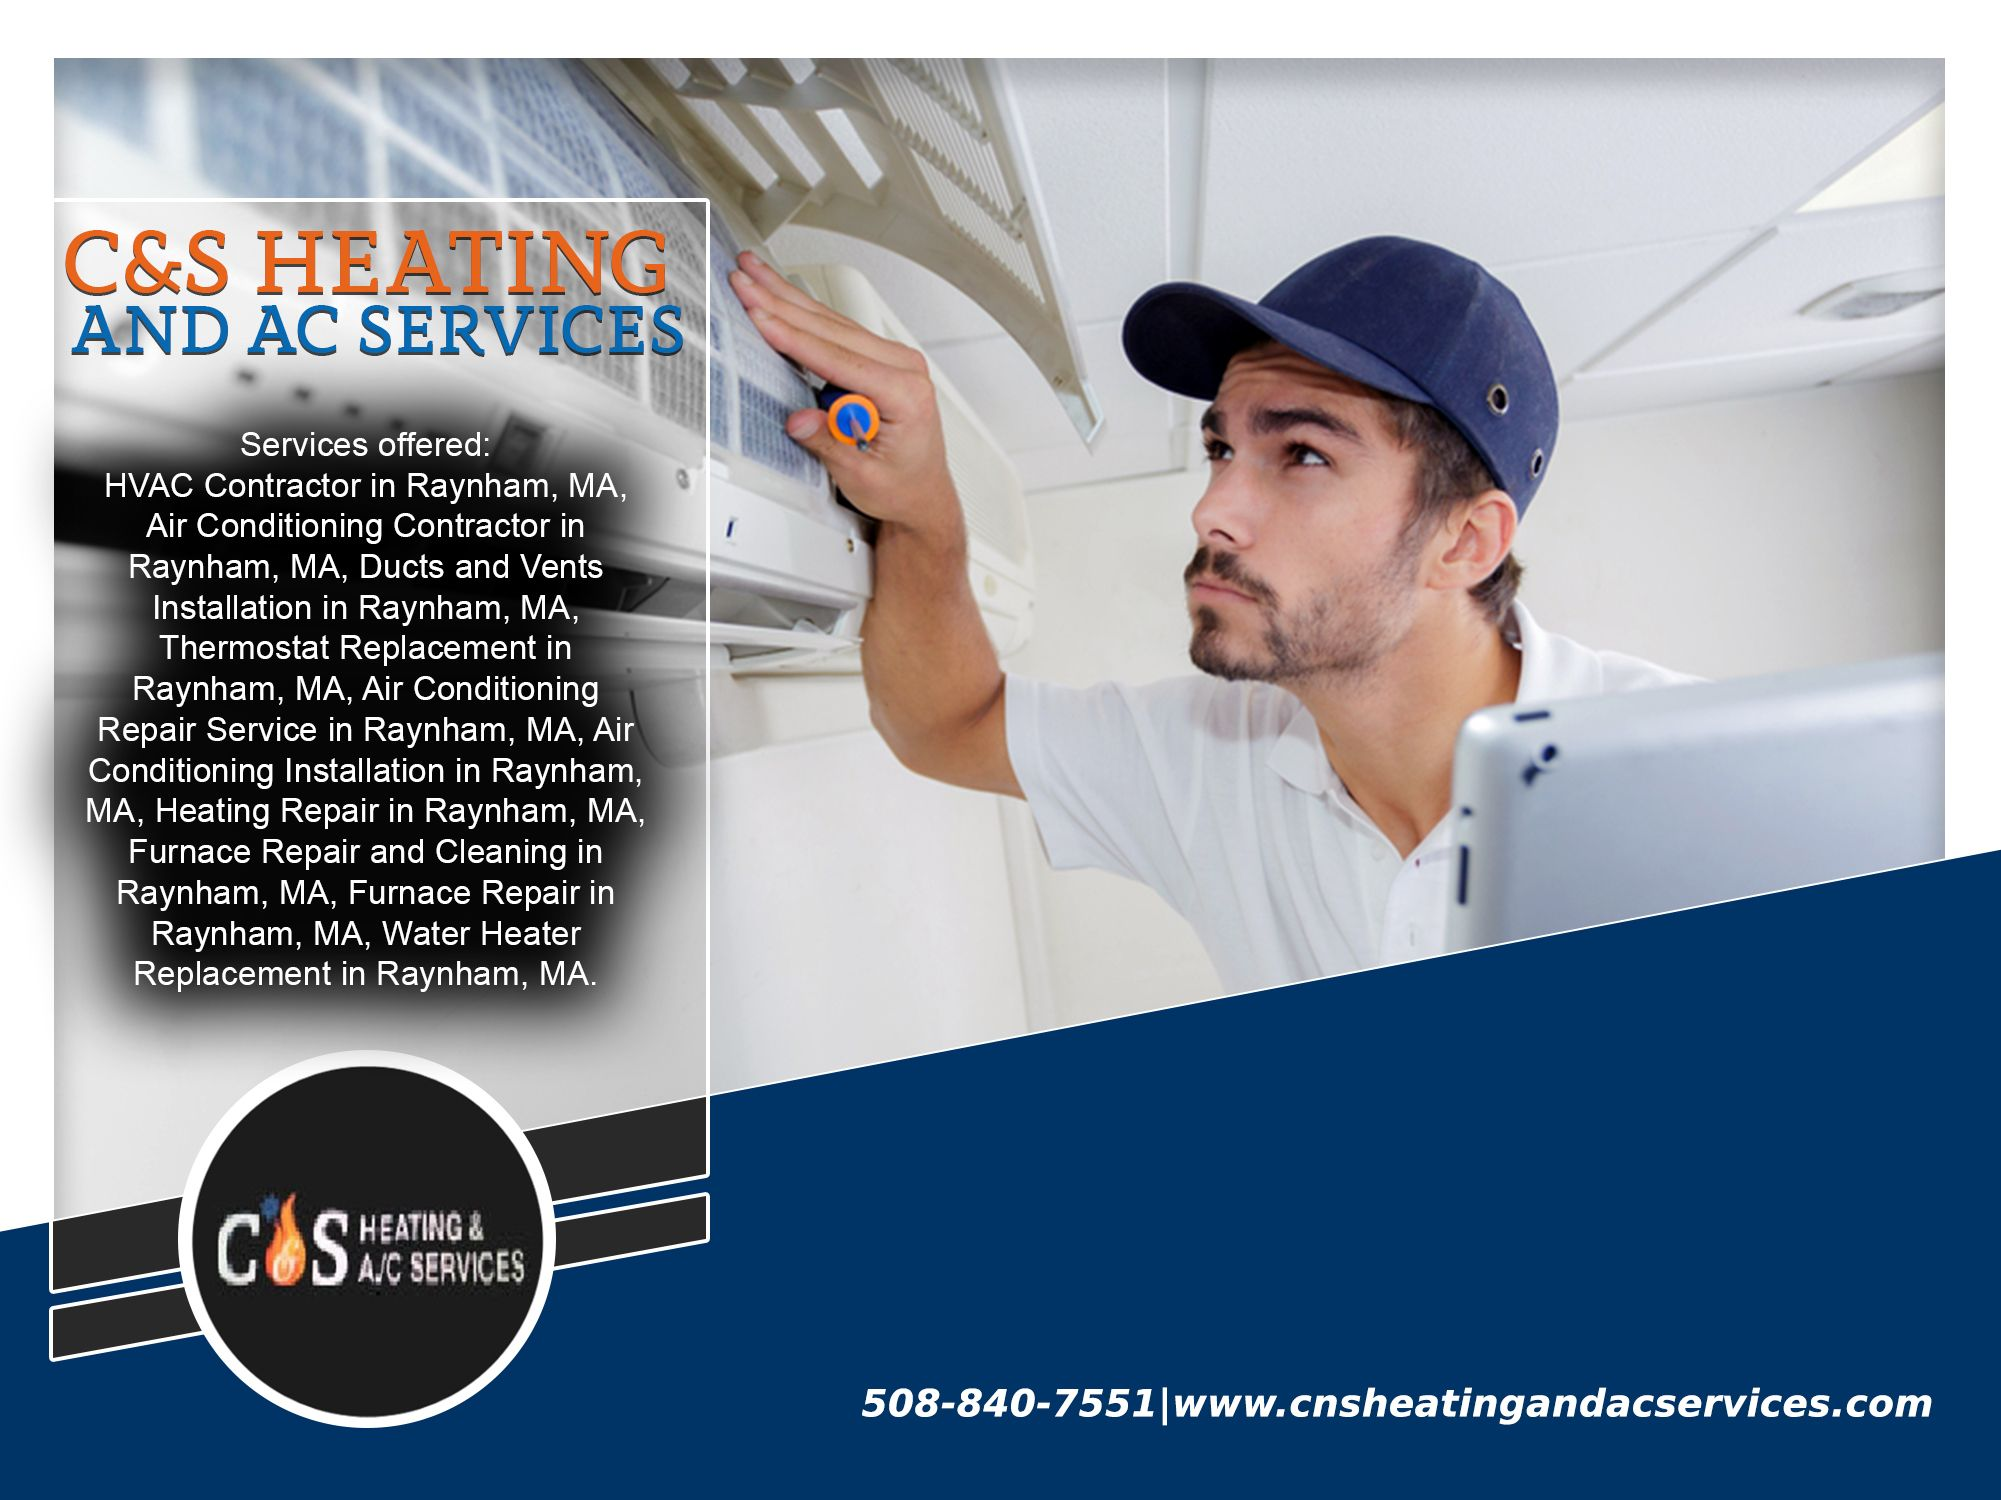 At C&S Heating and AC Services, we uphold high standards